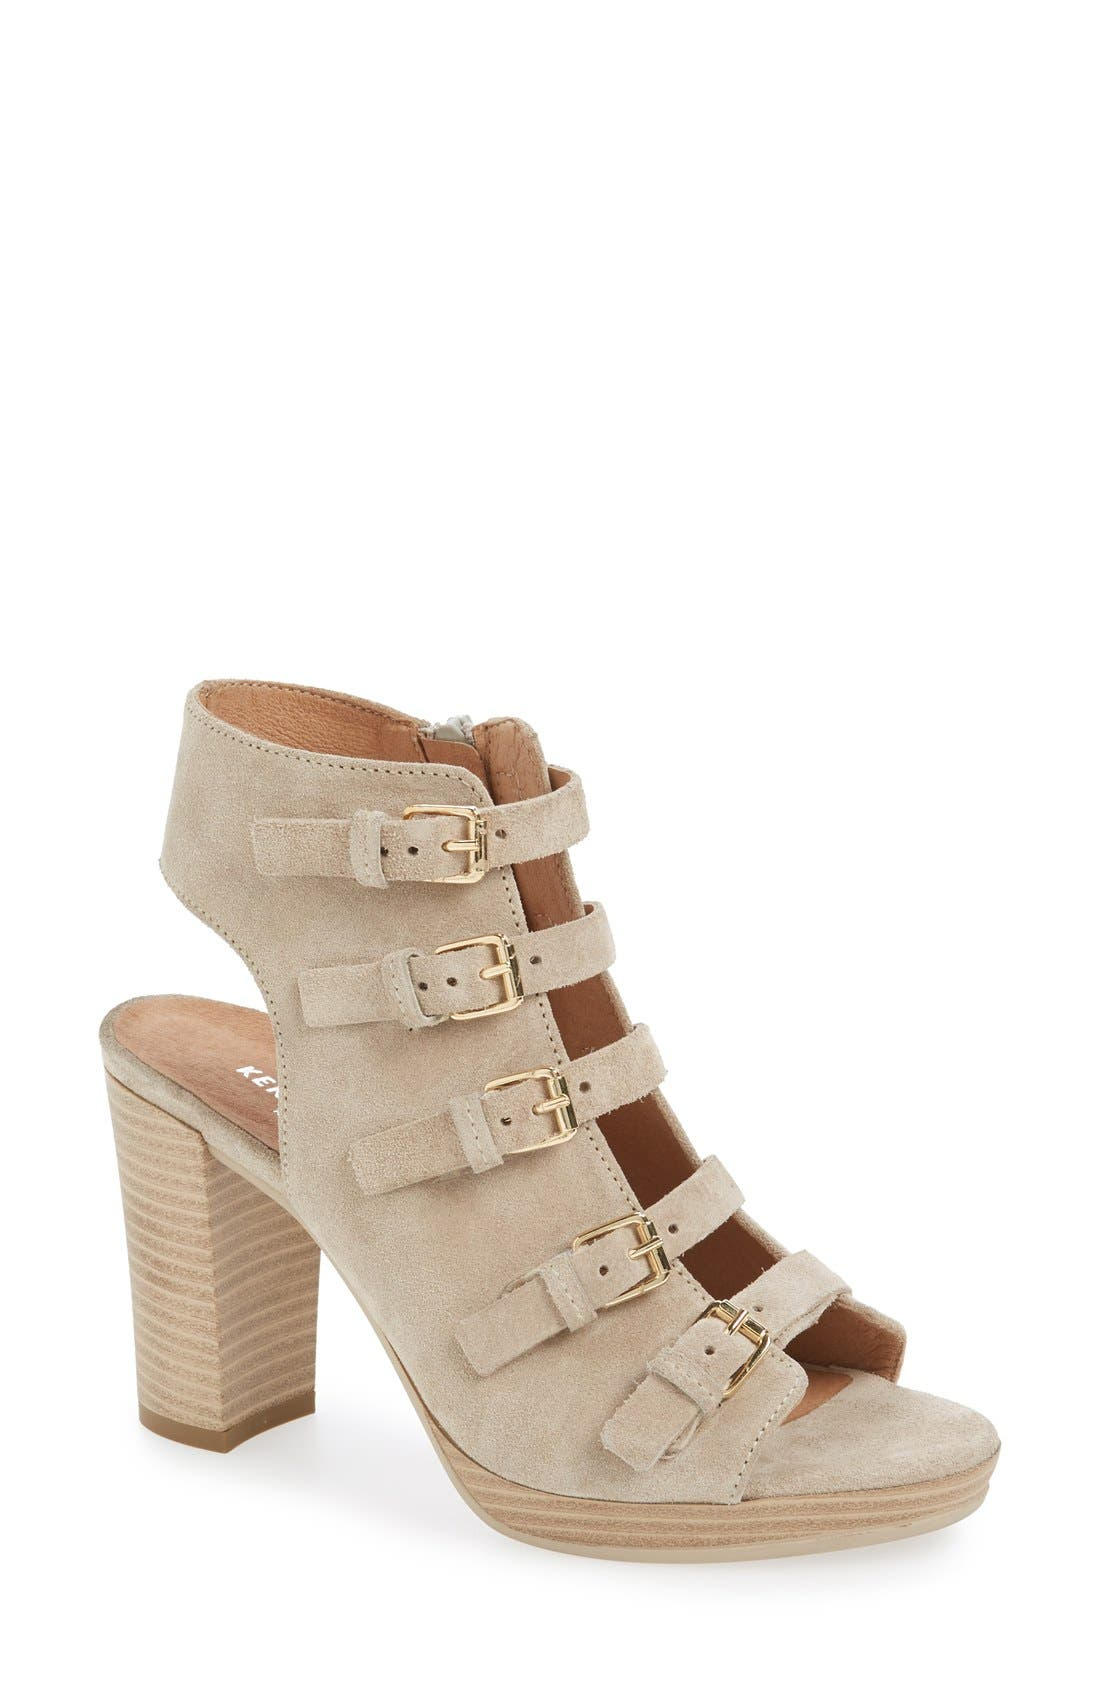 'Kennedy' Buckle Strap Block Heel Sandal,                             Main thumbnail 2, color,